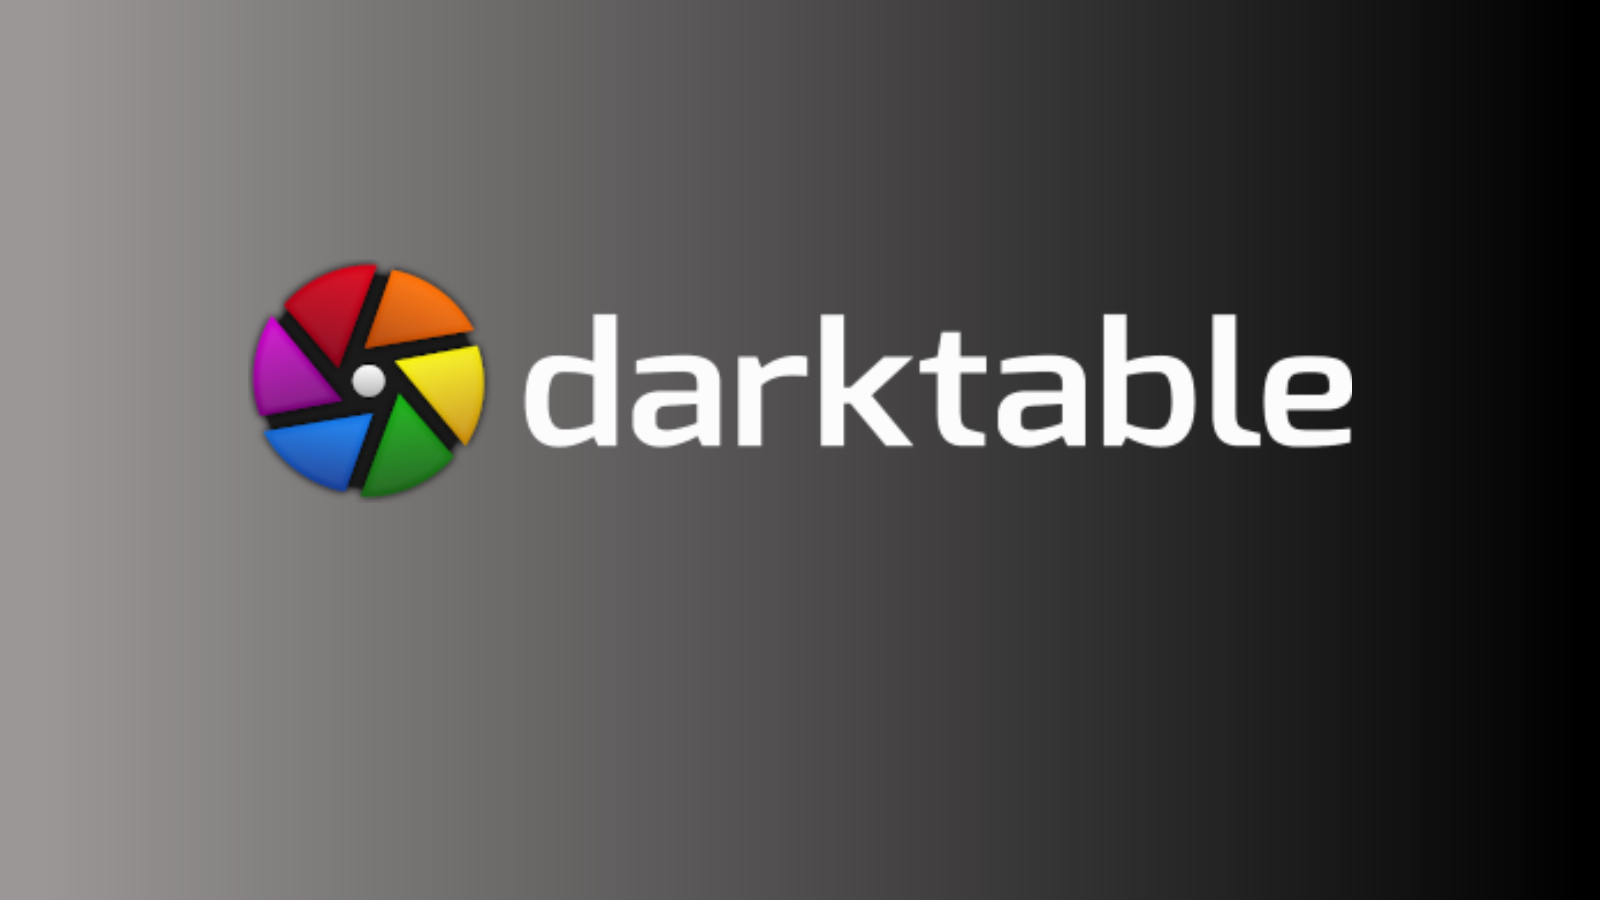 Darktable: How to install this Lightroom alternative on your Chromebook